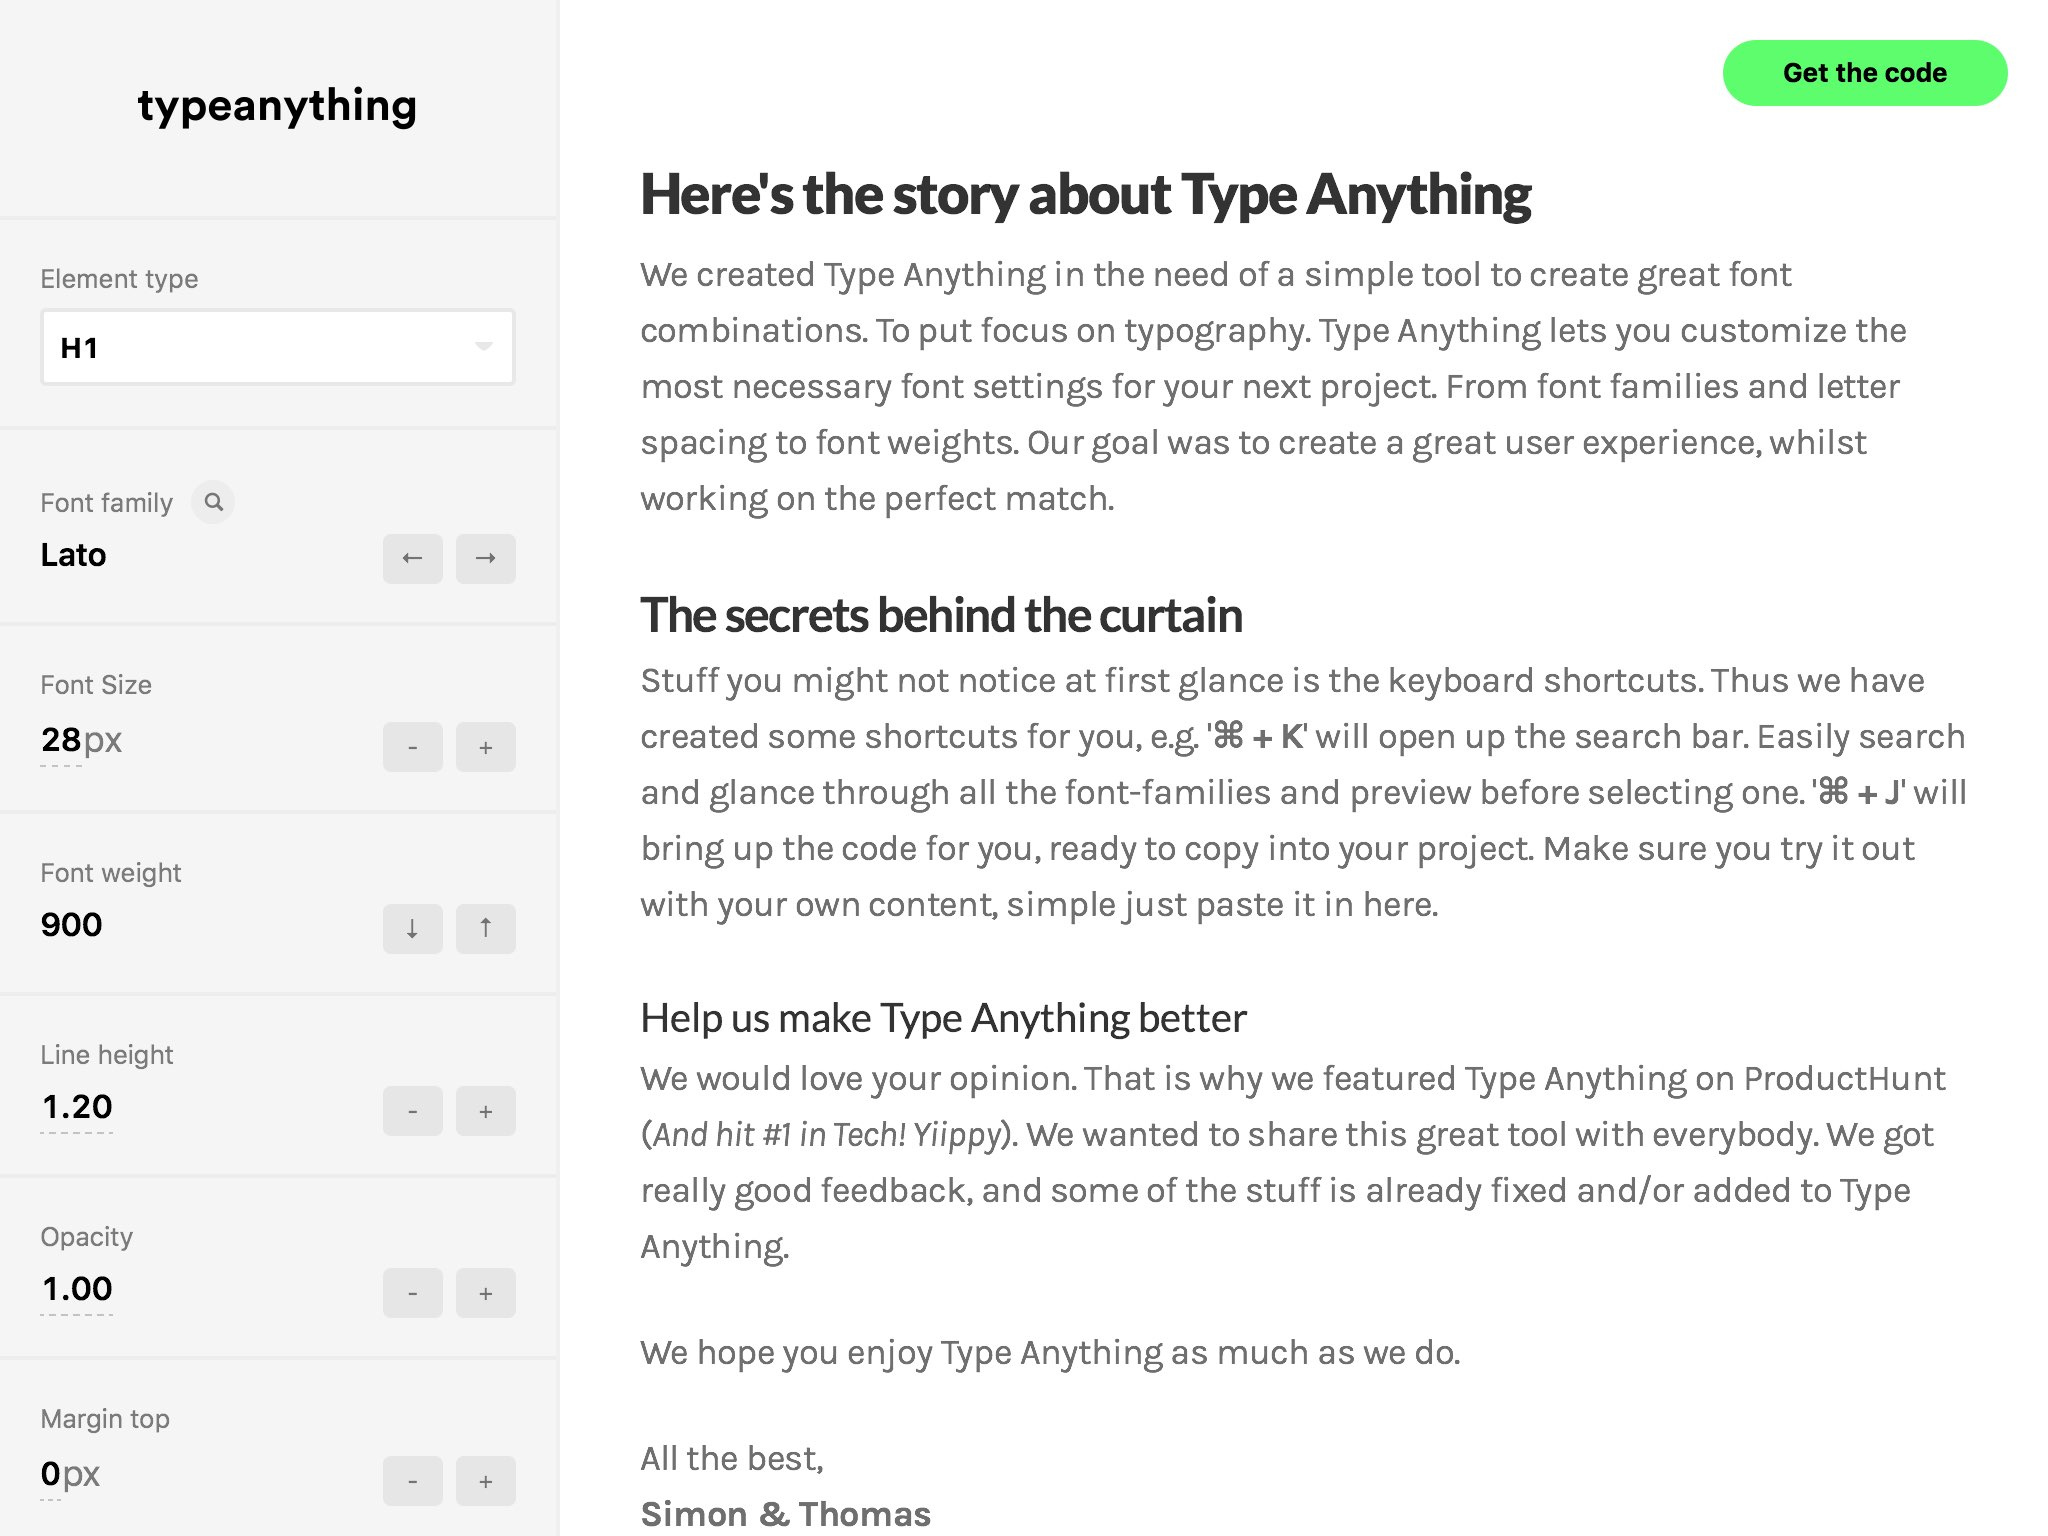 Type Anything is a free and awesome typography tool to create and test font combinations for your projects